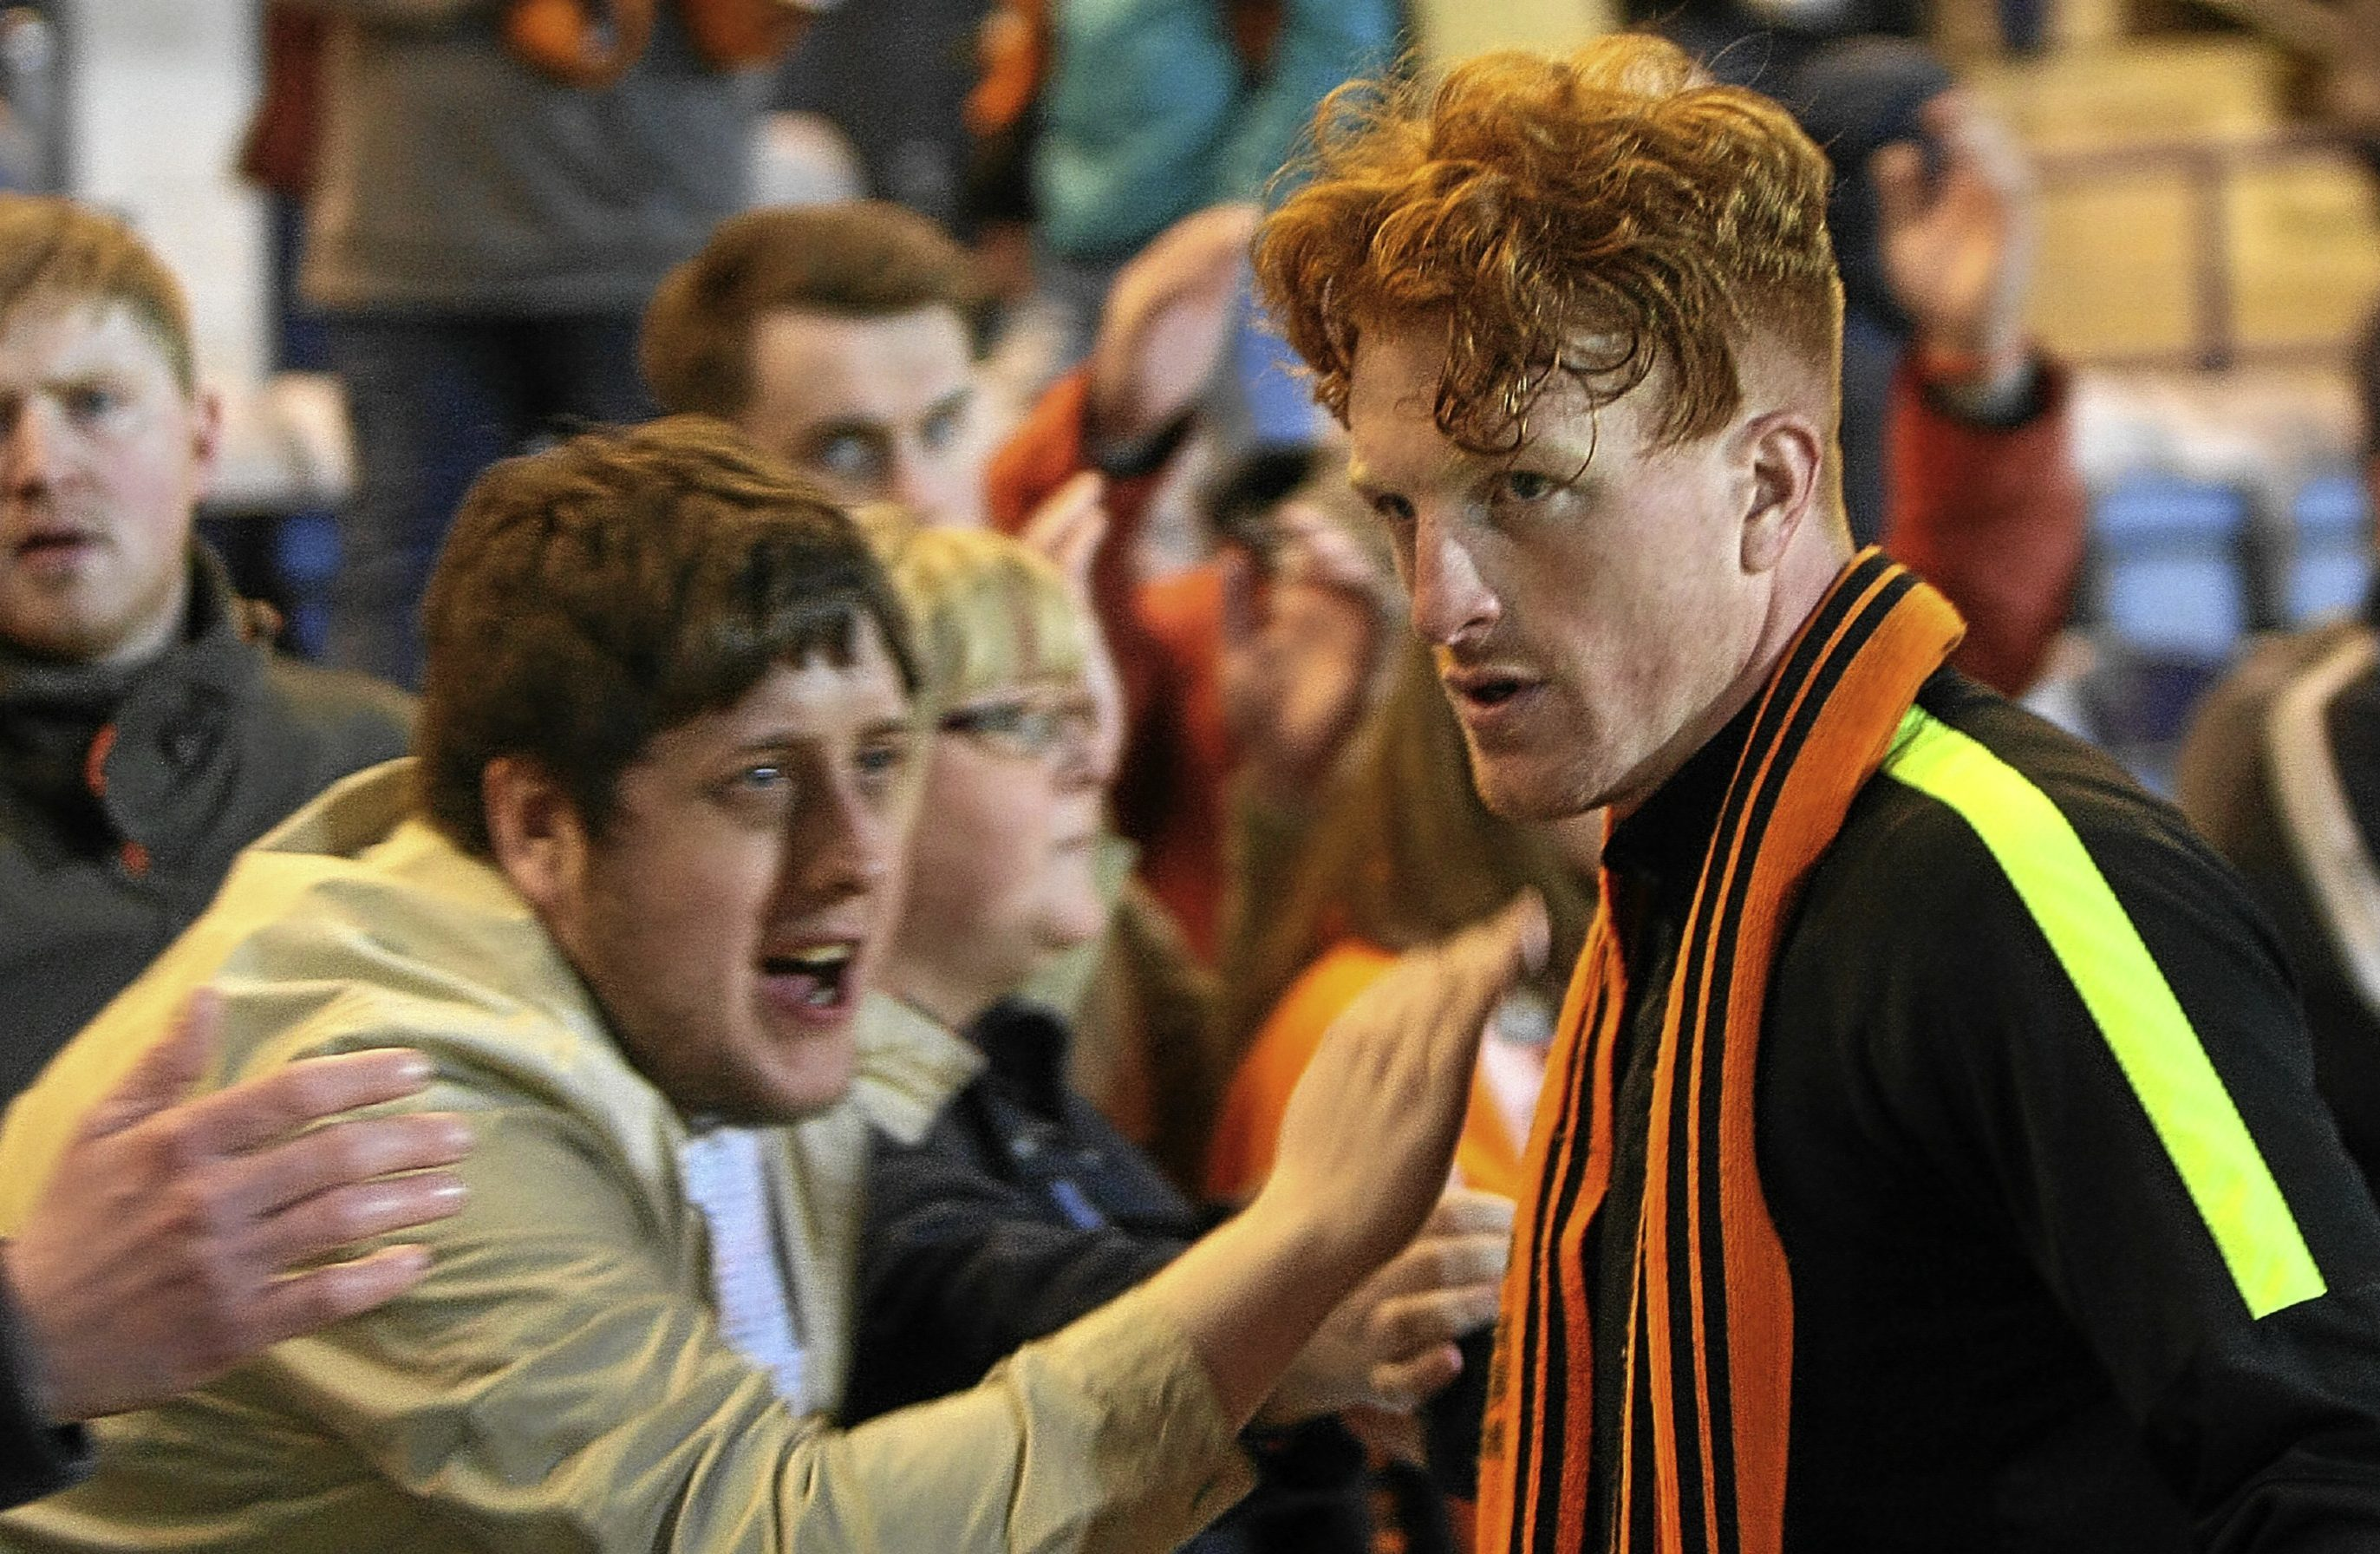 Dundee United supporters commiserate with striker Simon Murray after the derby defeat at Dens consigned the Tangerines to Championship football next season.